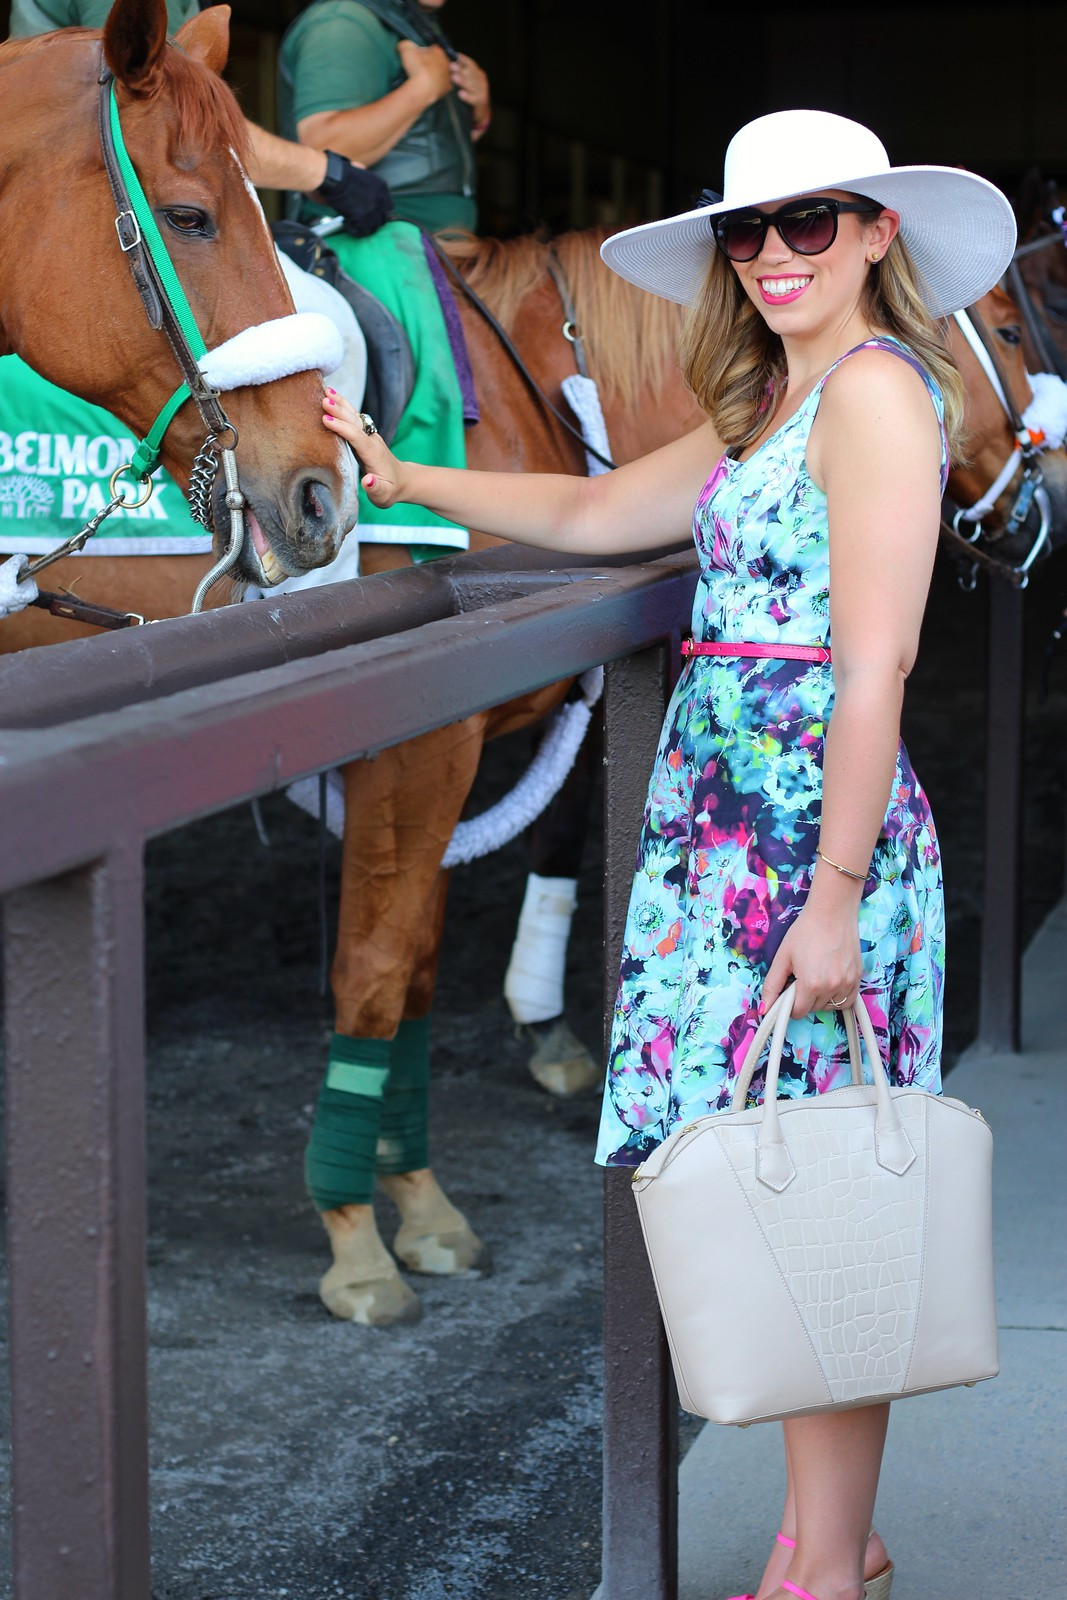 Floral Dress & Derby Hat at Belmont Racetrack | A Look Back at 10 Years of Blogging Living After Midnite Blogger Jackie Giardina